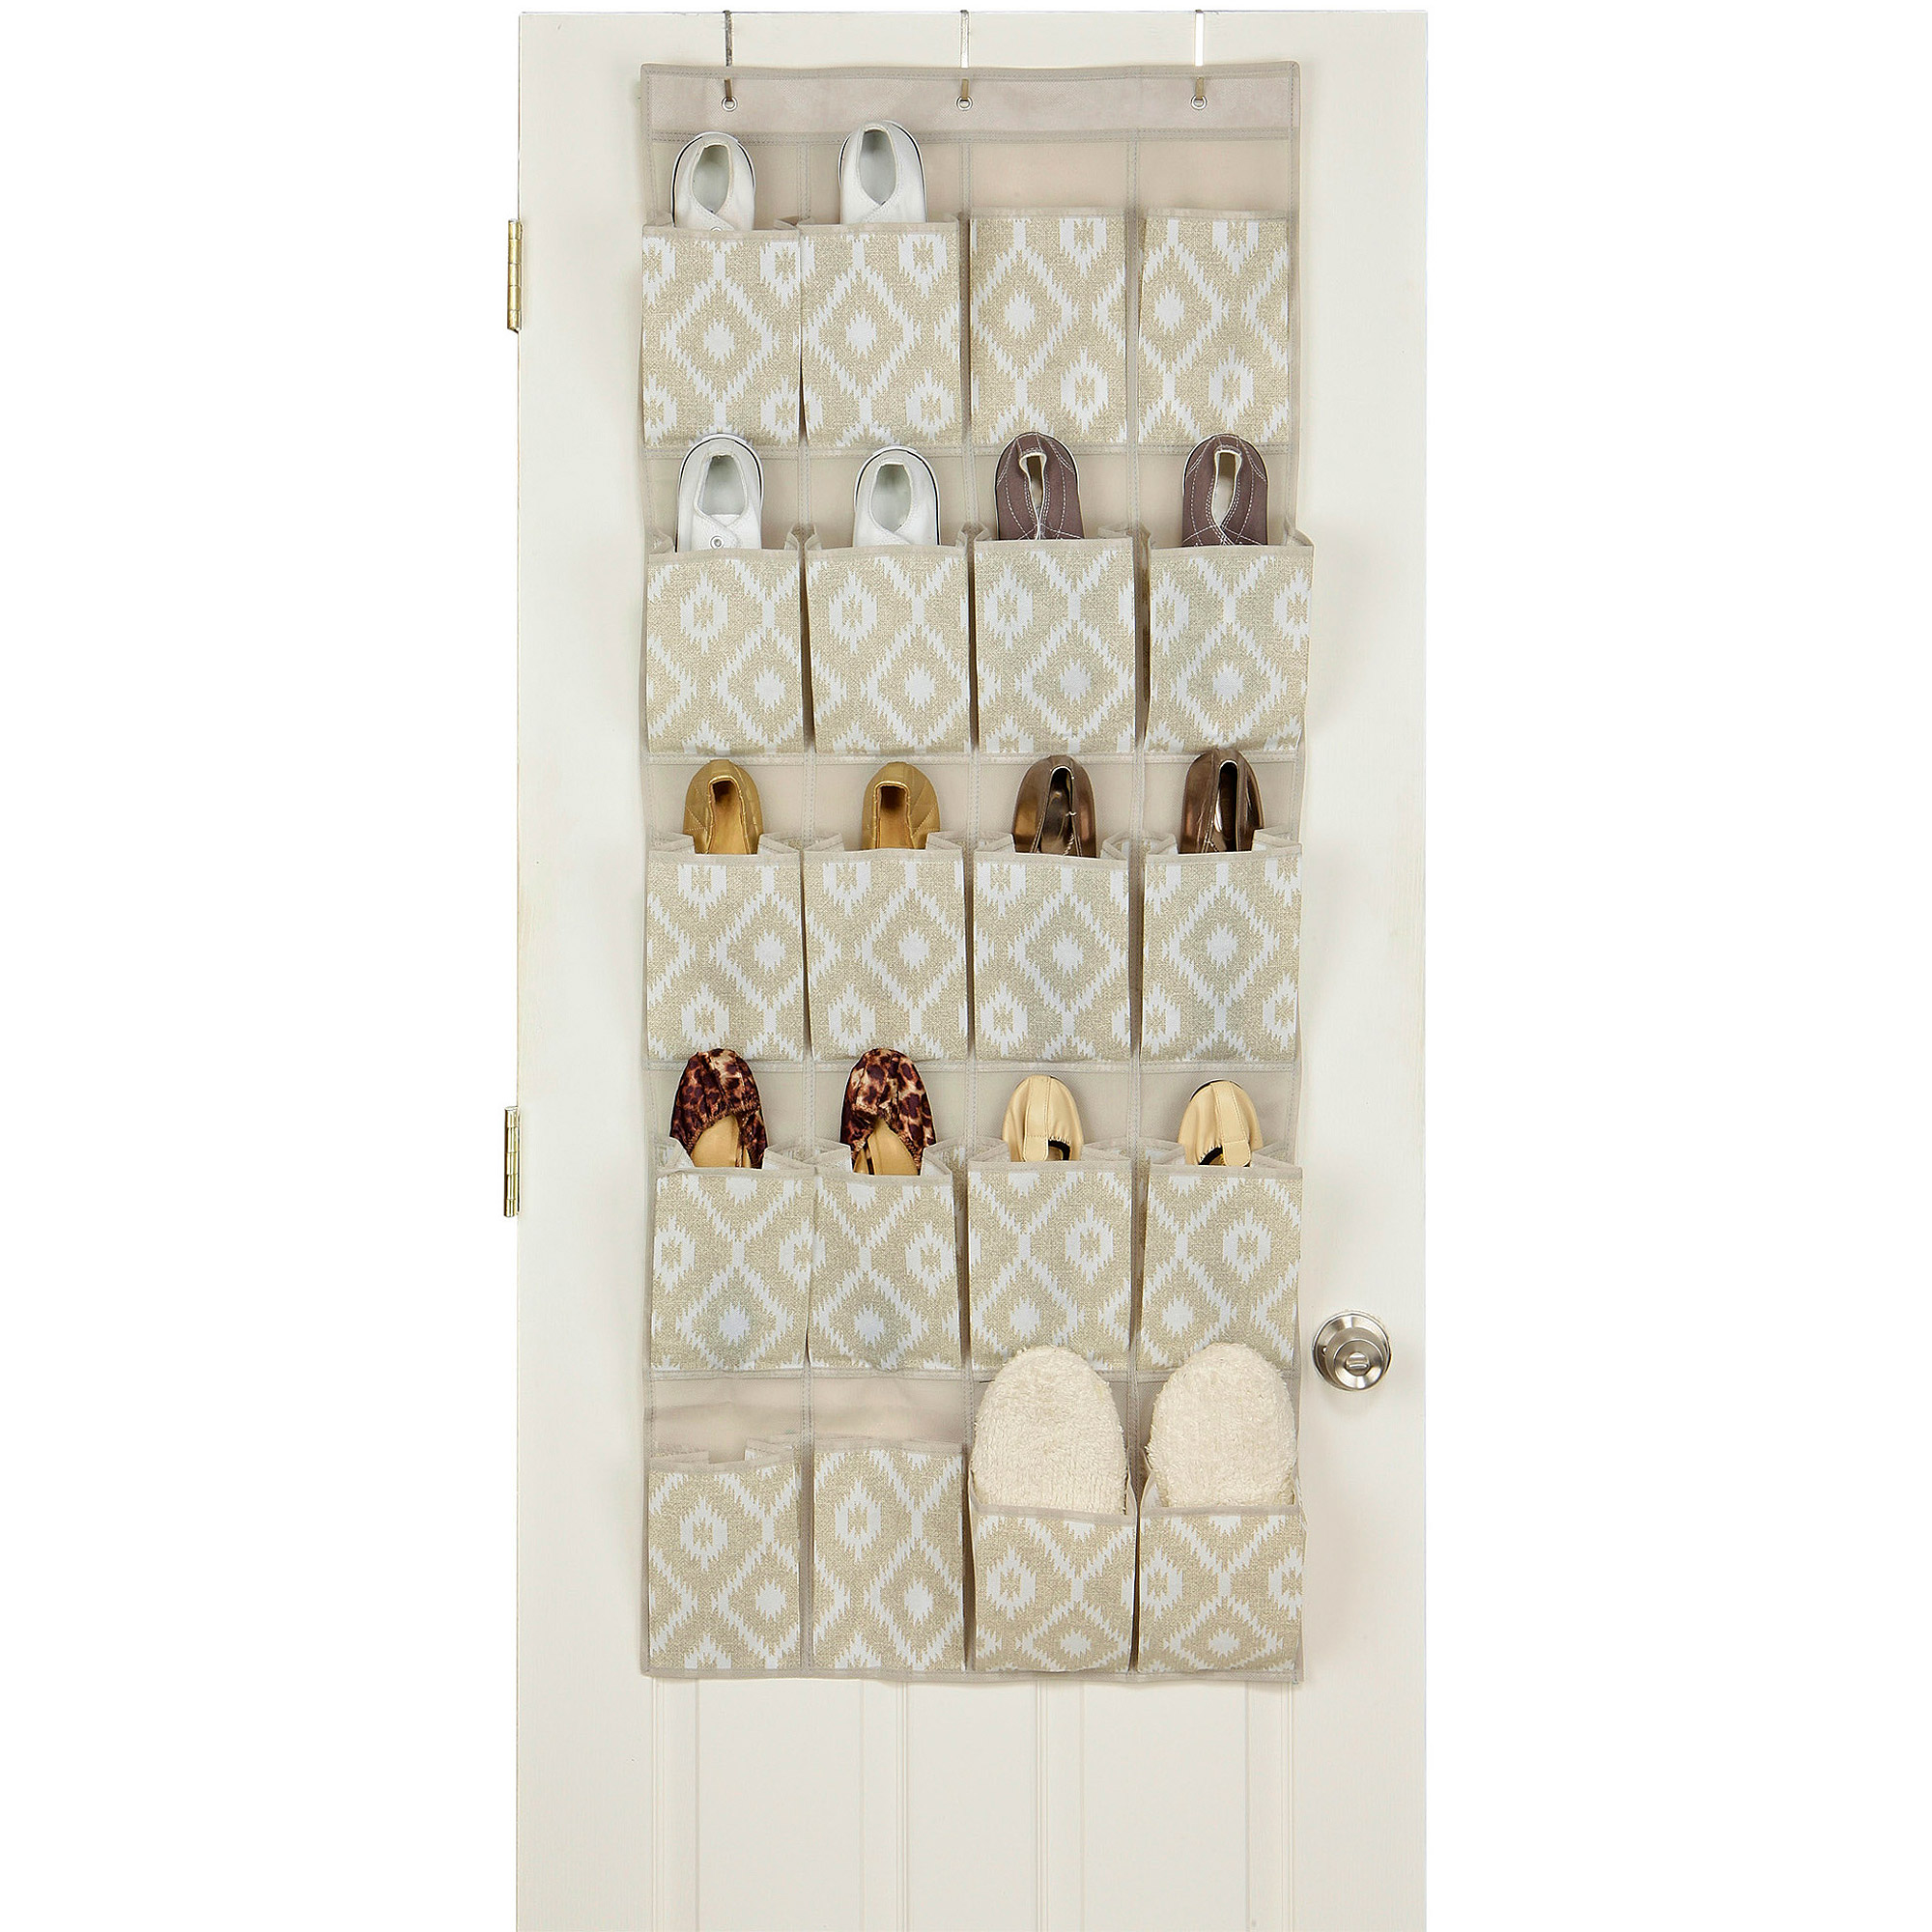 HouseCandie 20-Pocket Over-The-Door Shoe Organizer, India Faux Jute